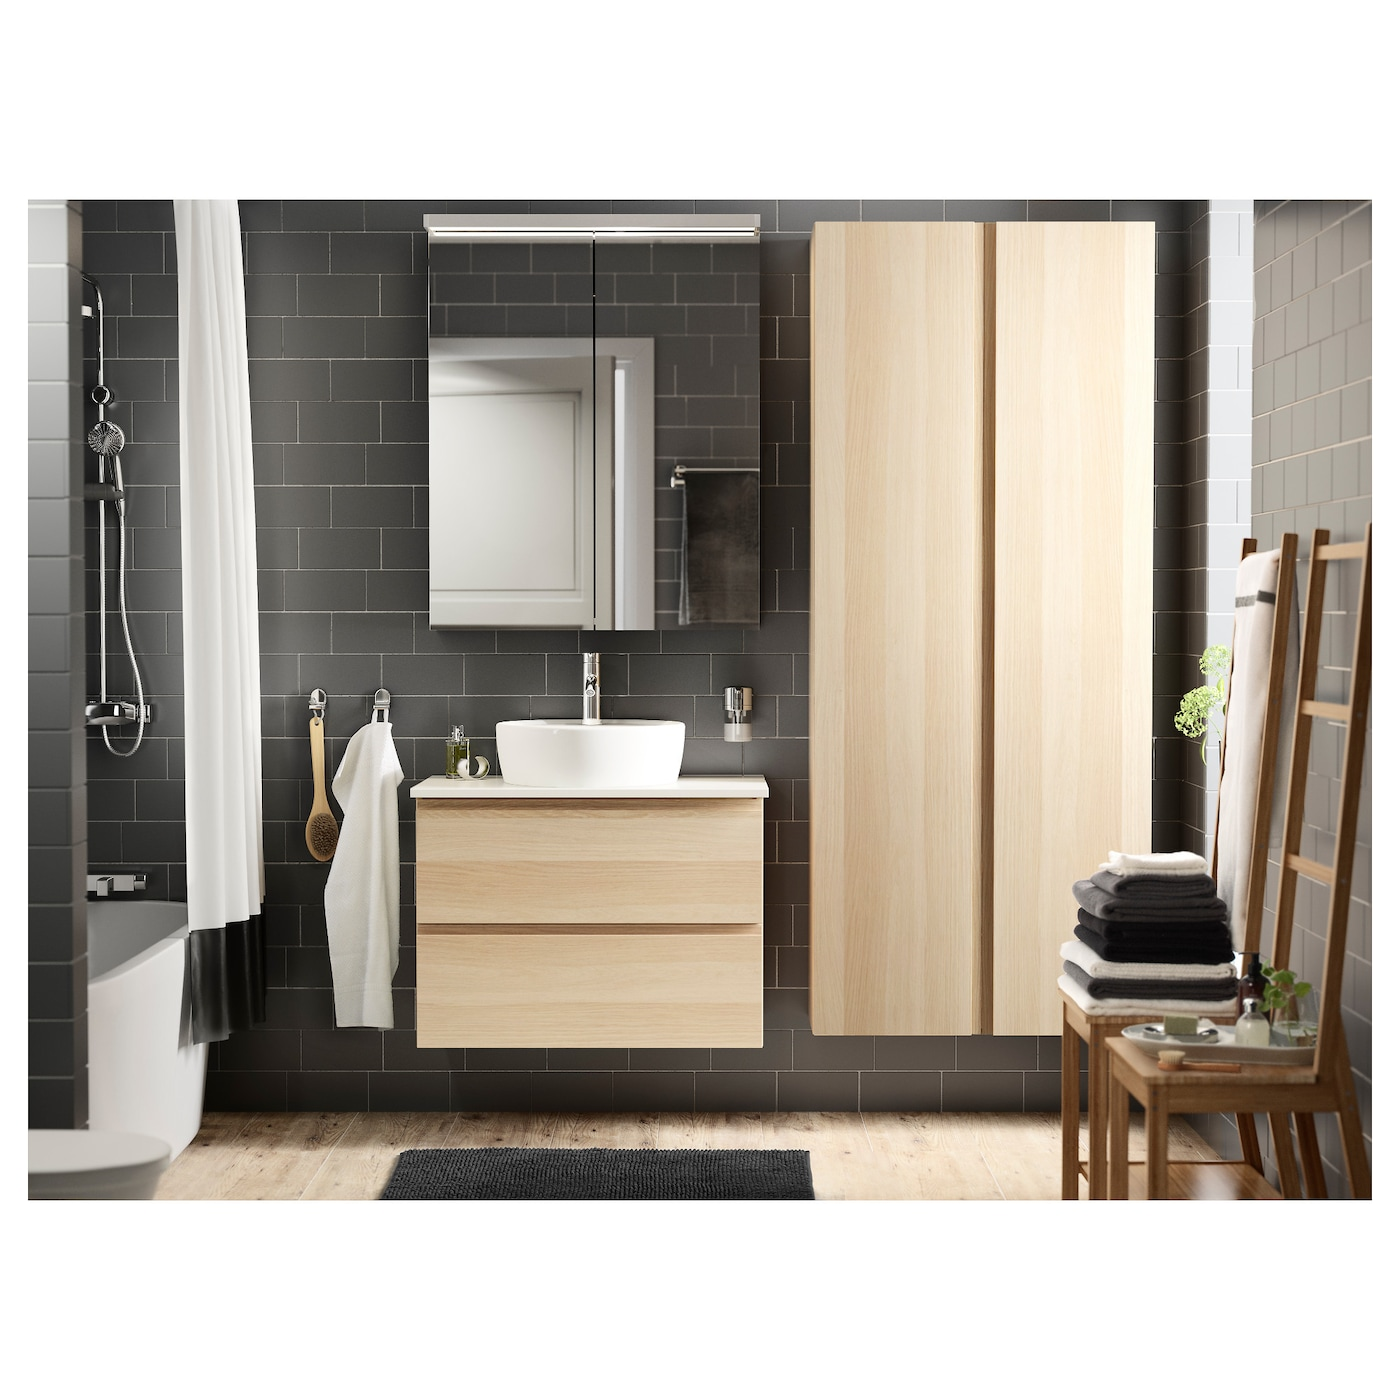 t rnviken lavabo poser blanc 45 cm ikea. Black Bedroom Furniture Sets. Home Design Ideas